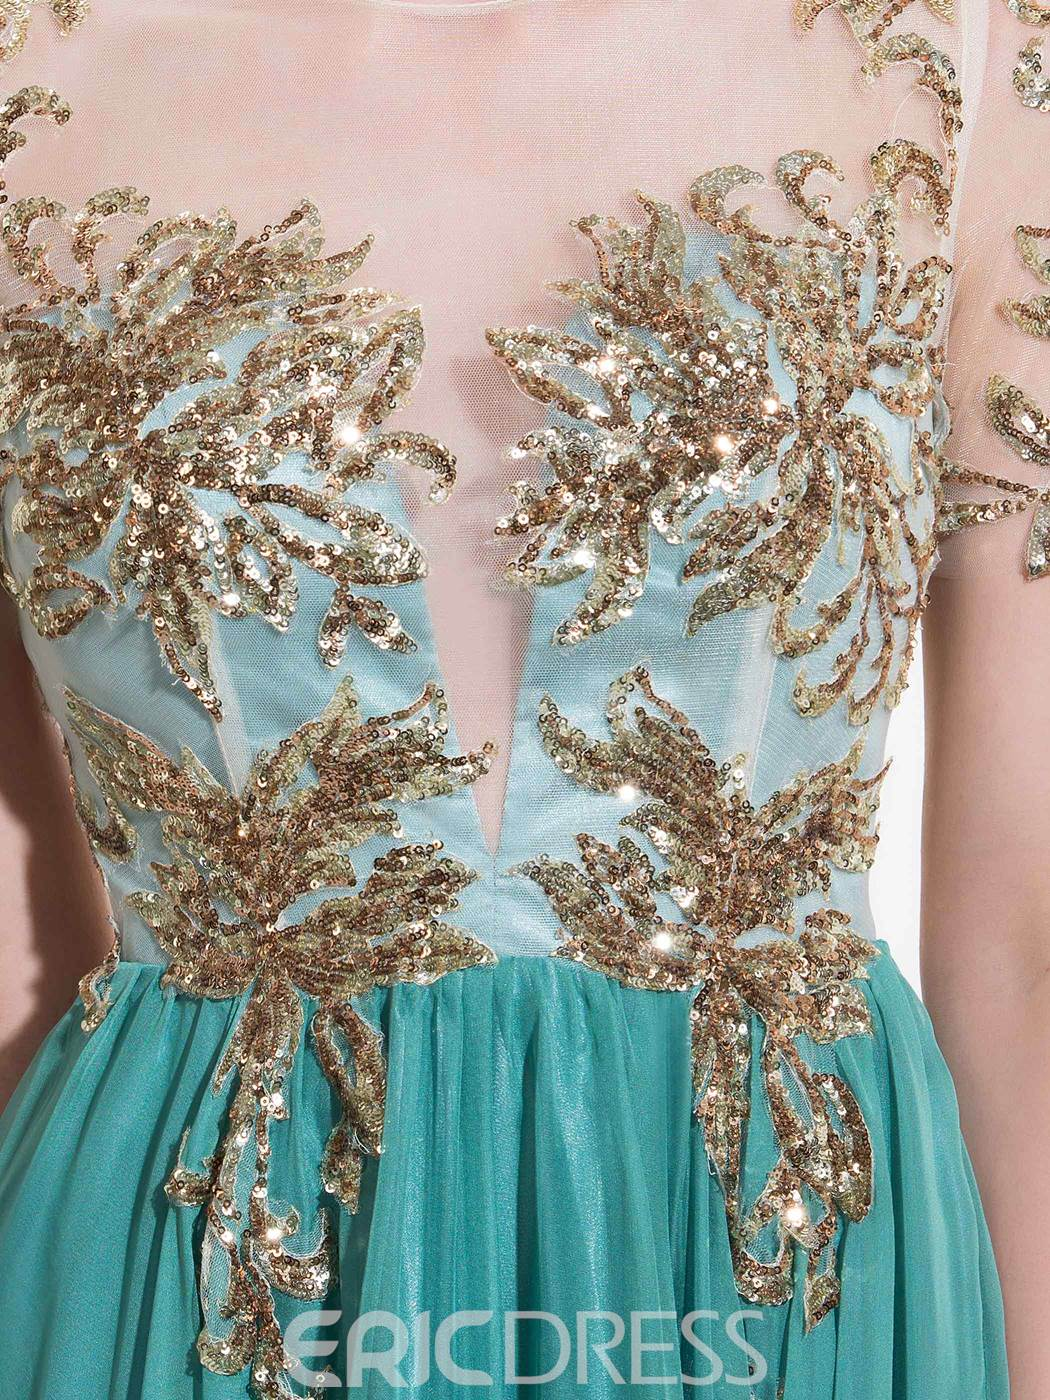 Ericdress Short Sleeves A-Line Floor-Length Prom Dress With Appliques And Sequins